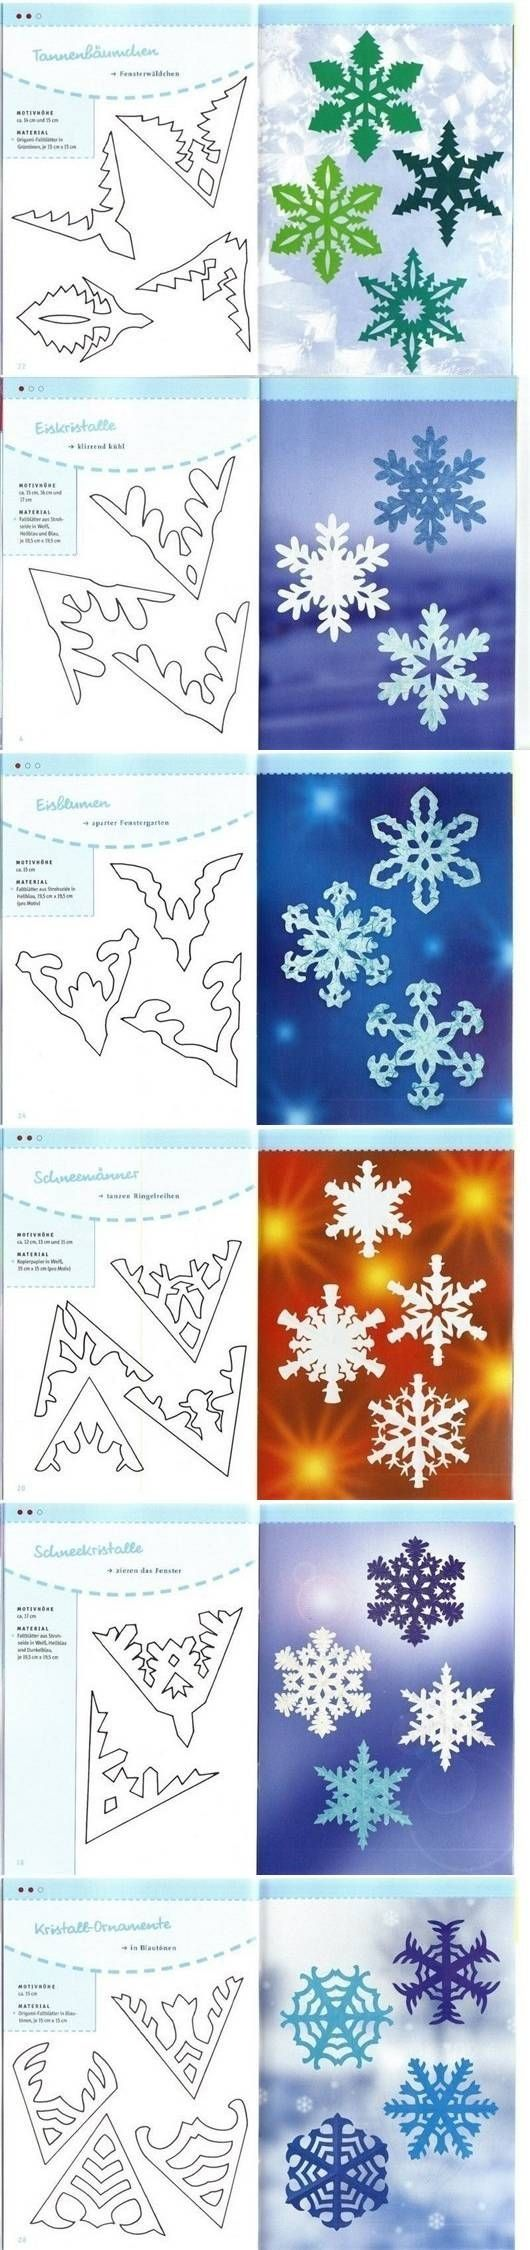 Diy paper schemes of snowflakes diy how to tutorial for Diy snowflakes paper pattern